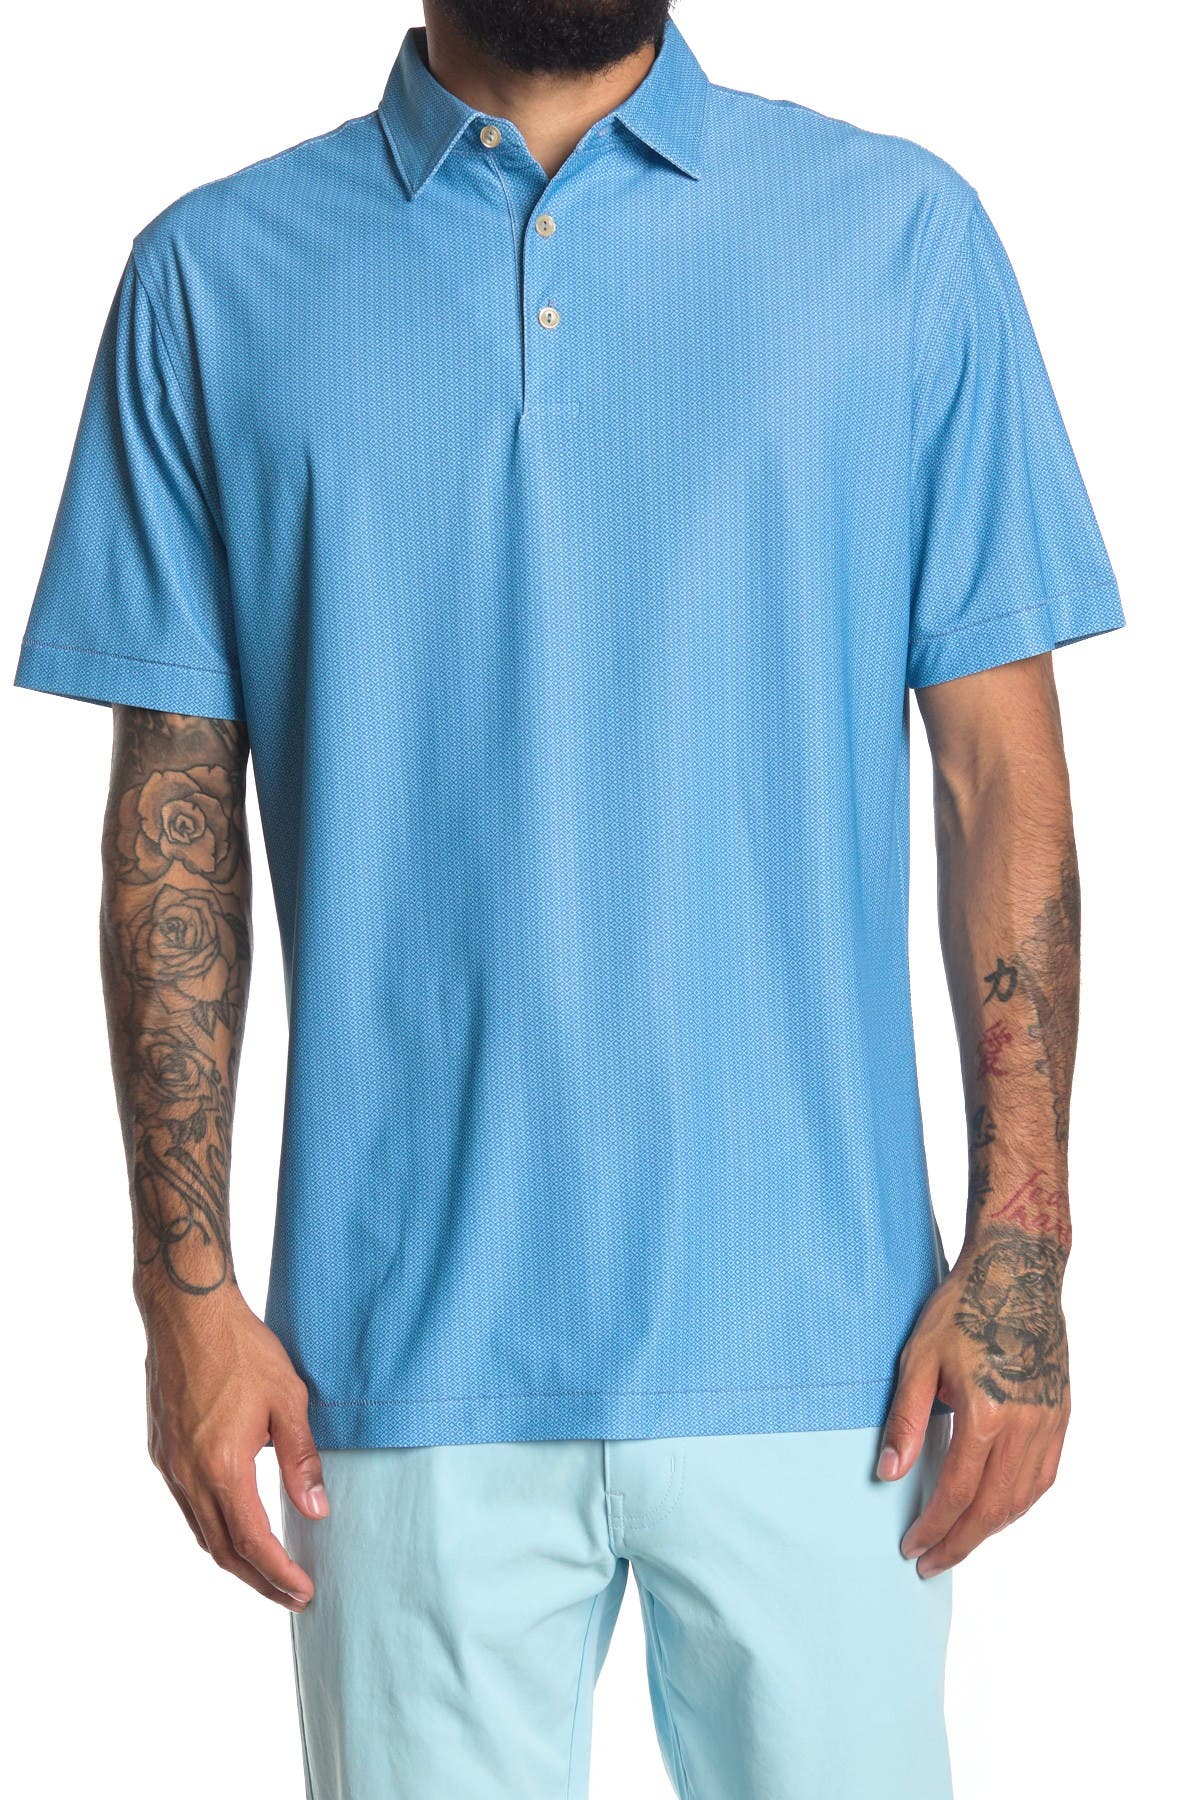 Image of Peter Millar Jamm Geo Print Stretch Mesh Polo